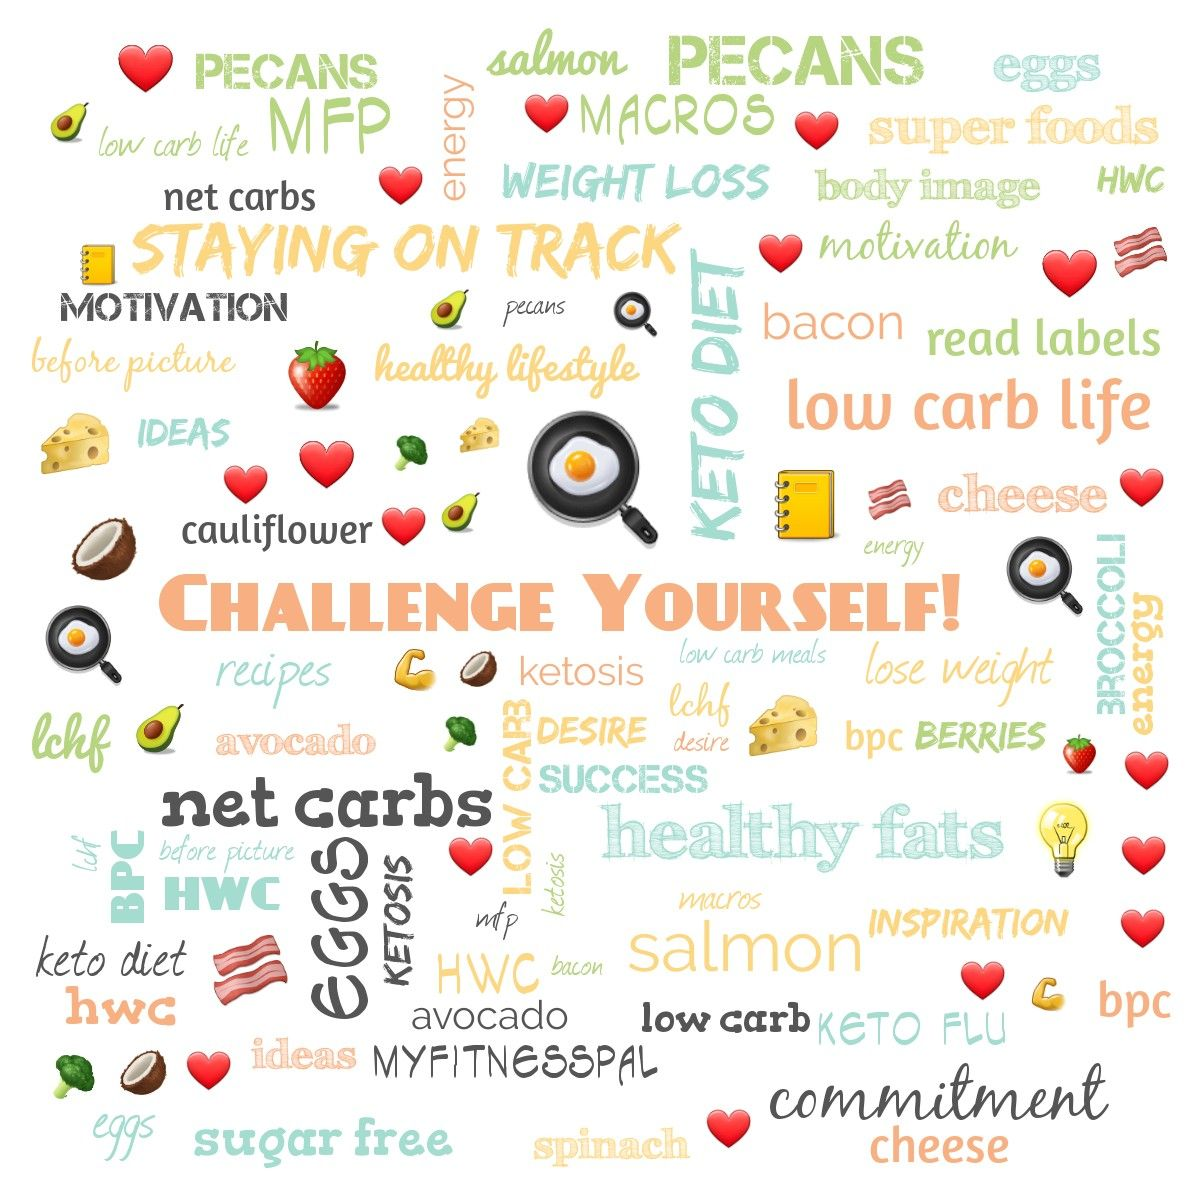 Join Us The Free Summer Low Carb Challenge Starts Monday